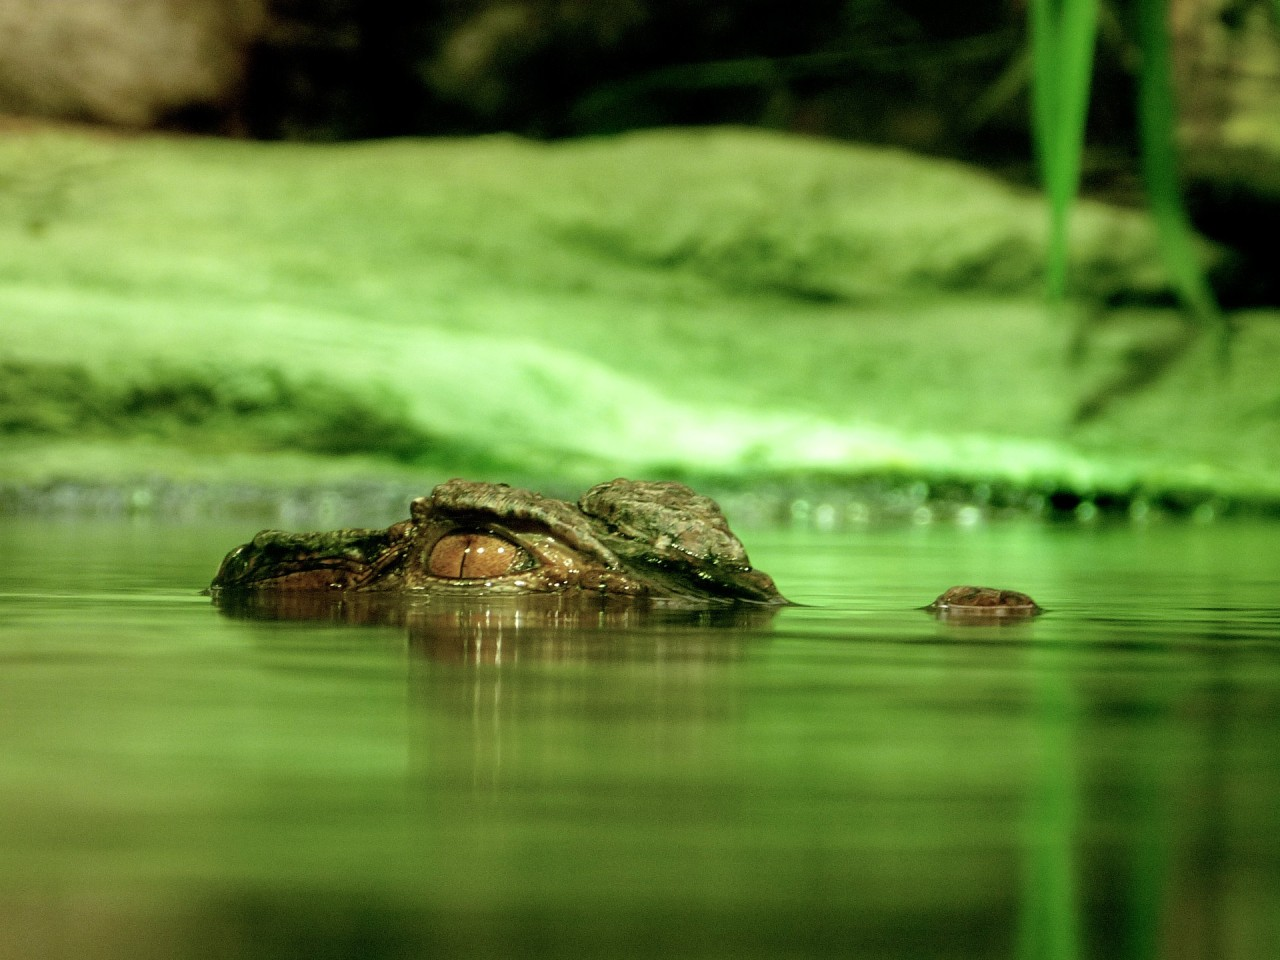 alligator peeking out of the water